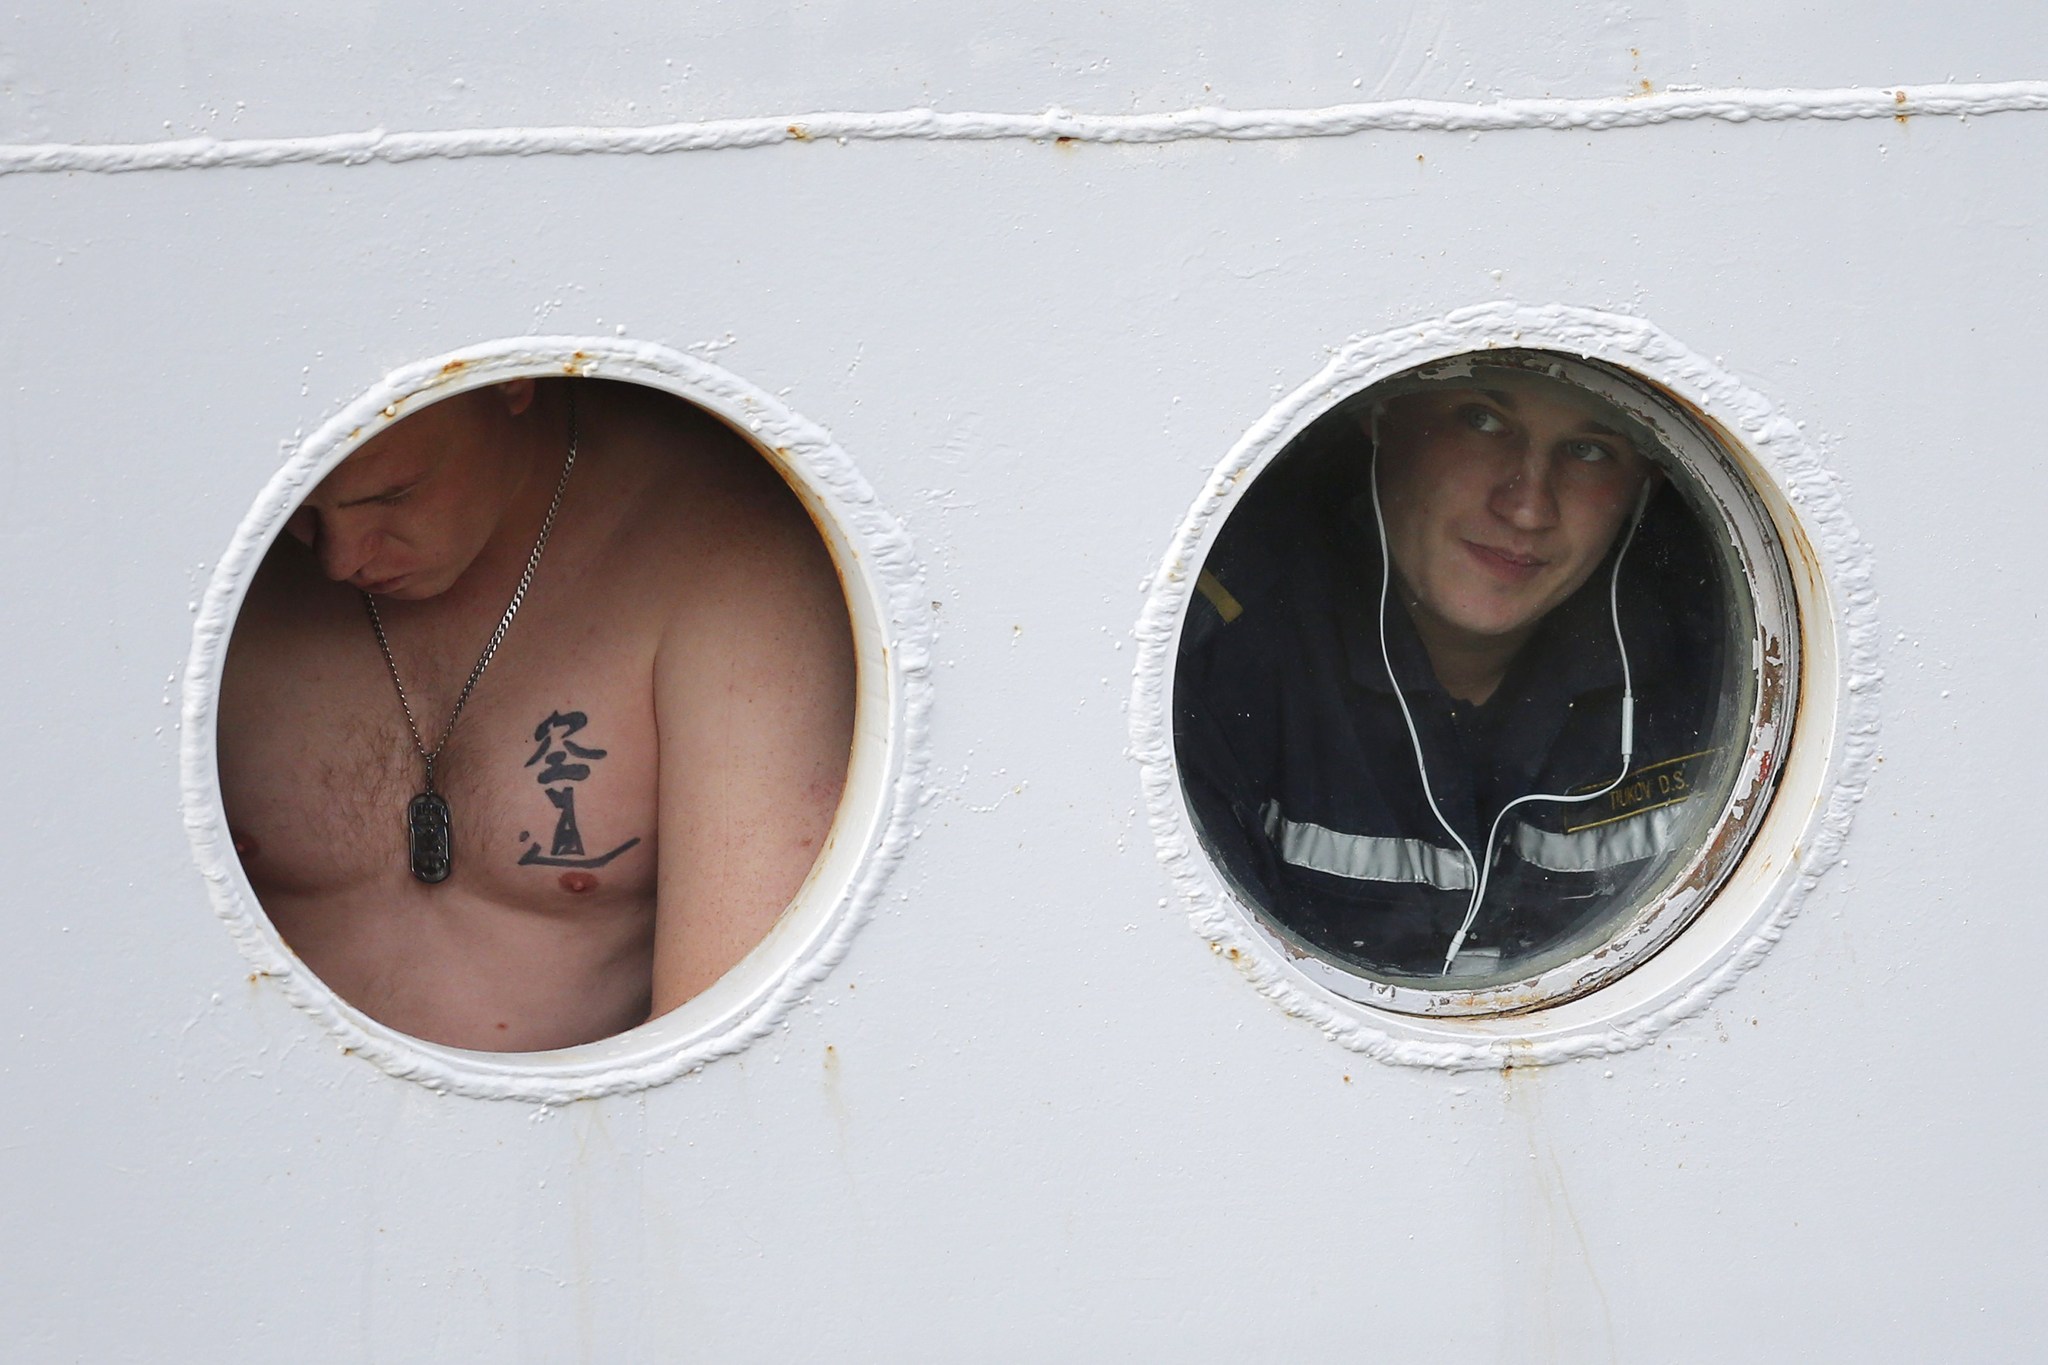 A Russian sailor looks through a porthole of the Russian Navy frigate Smolny as the ship leaves the STX Les Chantiers de l'Atlantique shipyard site in Saint-Nazaire...A Russian sailor looks through a porthole of the Russian Navy frigate Smolny as the ship leaves the STX Les Chantiers de l'Atlantique shipyard site in Saint-Nazaire, western France, December 18, 2014. A ship carrying the Russian sailors, who have been training for months on a French-built Mistral helicopter carrier, left the French port of Saint-Nazaire on Thursday, with it still unclear whether Paris will finally deliver the ship to Moscow. The sailors arrived in late June at the shipyard to begin training on a first carrier, named Vladivostock, which France was due to deliver to Russia by the last quarter of 2014. REUTERS/Stephane Mahe (FRANCE - Tags: BUSINESS MILITARY POLITICS)